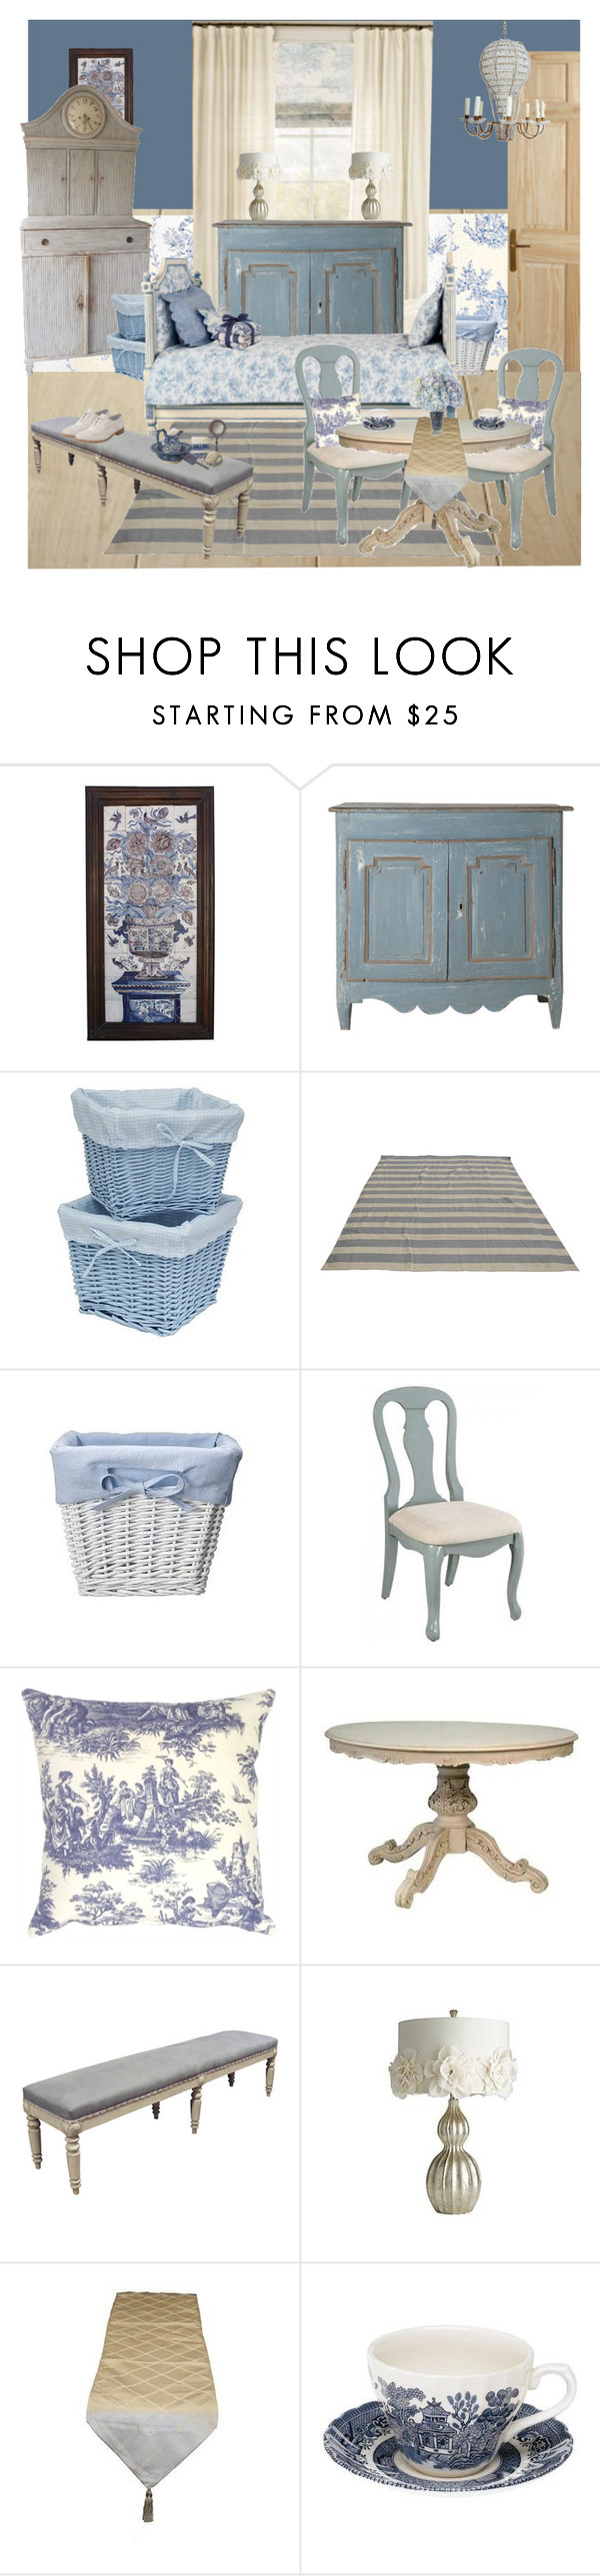 Interior design home burlington -  Blue Toile Bedroom By Meggiechelle Liked On Polyvore Featuring Interior Interiors Bedroom Setsdesign Homesinterior